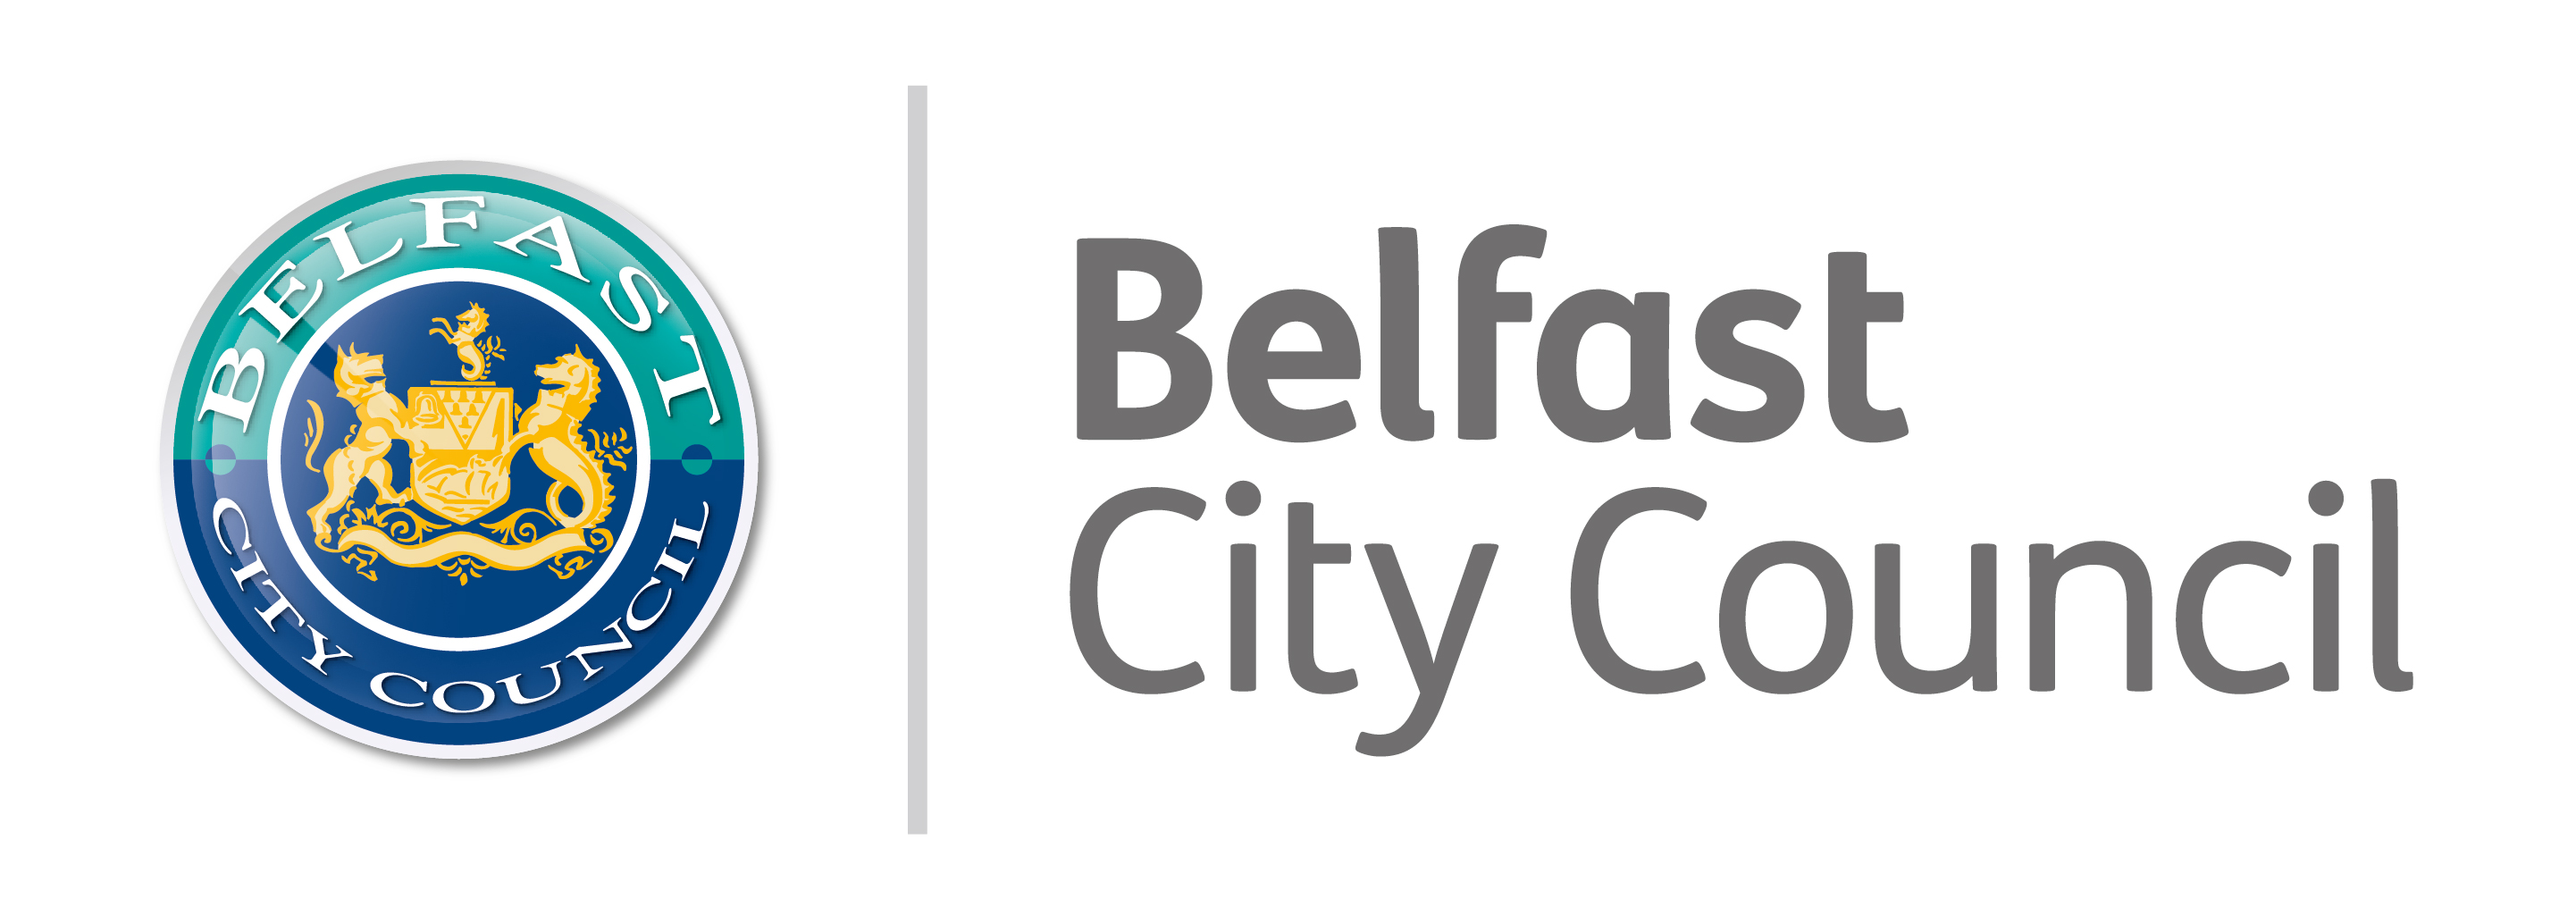 belfast-city-council-2015-master.jpg